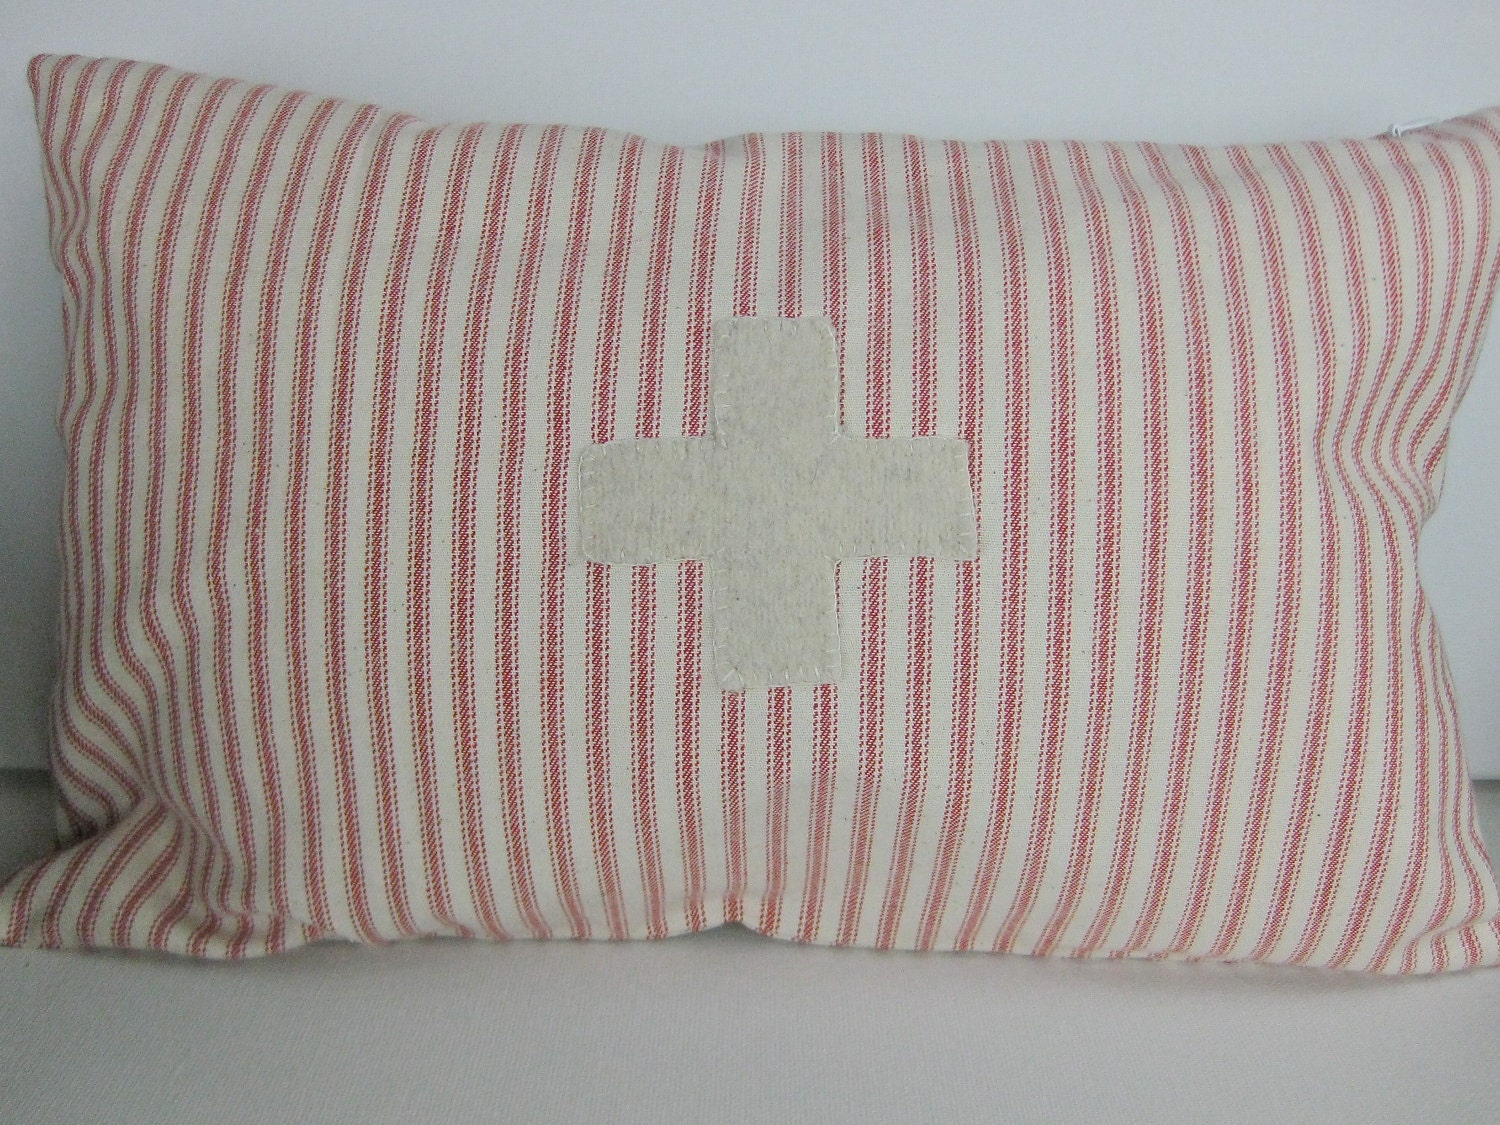 Beautiful Decorative Vintage Looking Swiss Cross Pillow - Cotton Red Ticking & Wool